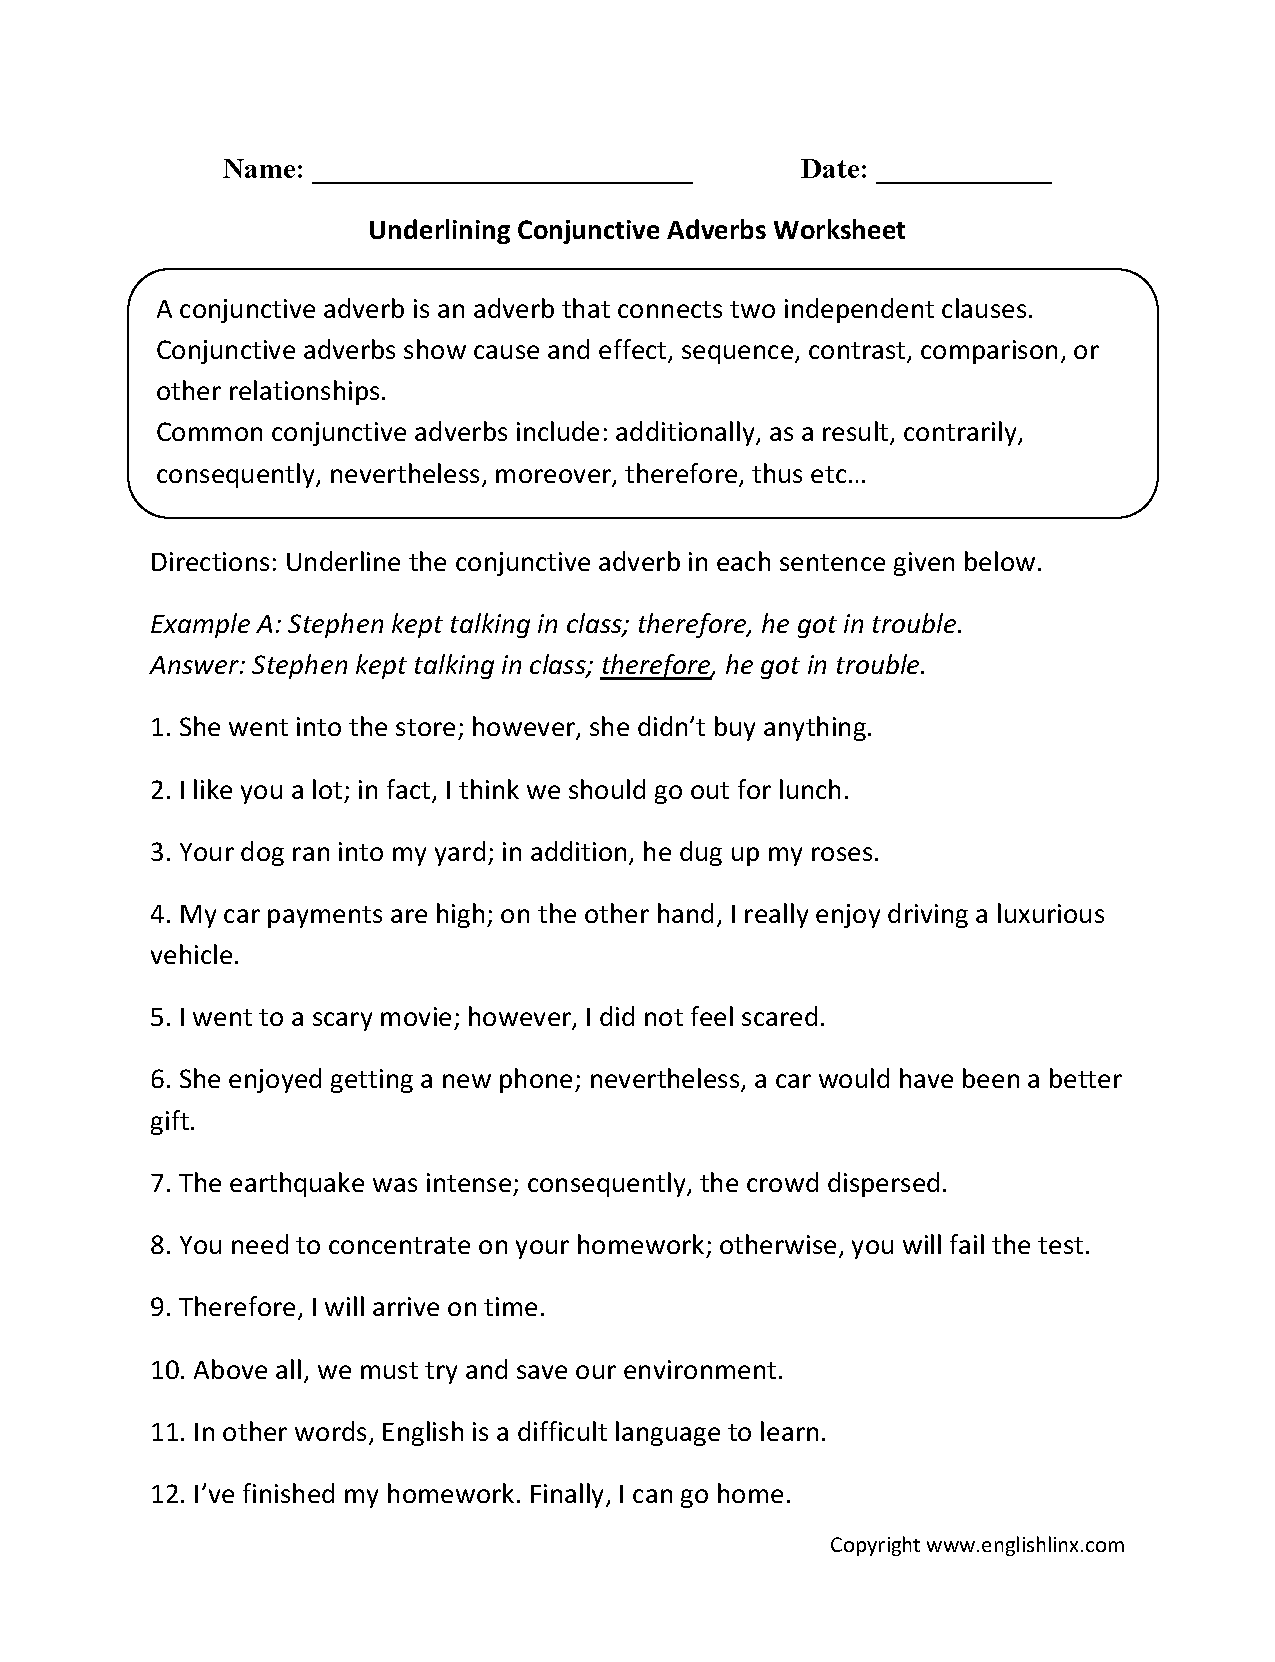 Aldiablosus  Unique Englishlinxcom  Conjunctions Worksheets With Hot Worksheet With Agreeable Science Lab Safety Rules Worksheet Also Unit  Outcome  Meiosis Coloring Worksheet Answers In Addition Free Kids Worksheets And Free Printable Second Grade Reading Comprehension Worksheets As Well As Printable Division Worksheets For Th Grade Additionally Complements Of  Worksheets From Englishlinxcom With Aldiablosus  Hot Englishlinxcom  Conjunctions Worksheets With Agreeable Worksheet And Unique Science Lab Safety Rules Worksheet Also Unit  Outcome  Meiosis Coloring Worksheet Answers In Addition Free Kids Worksheets From Englishlinxcom